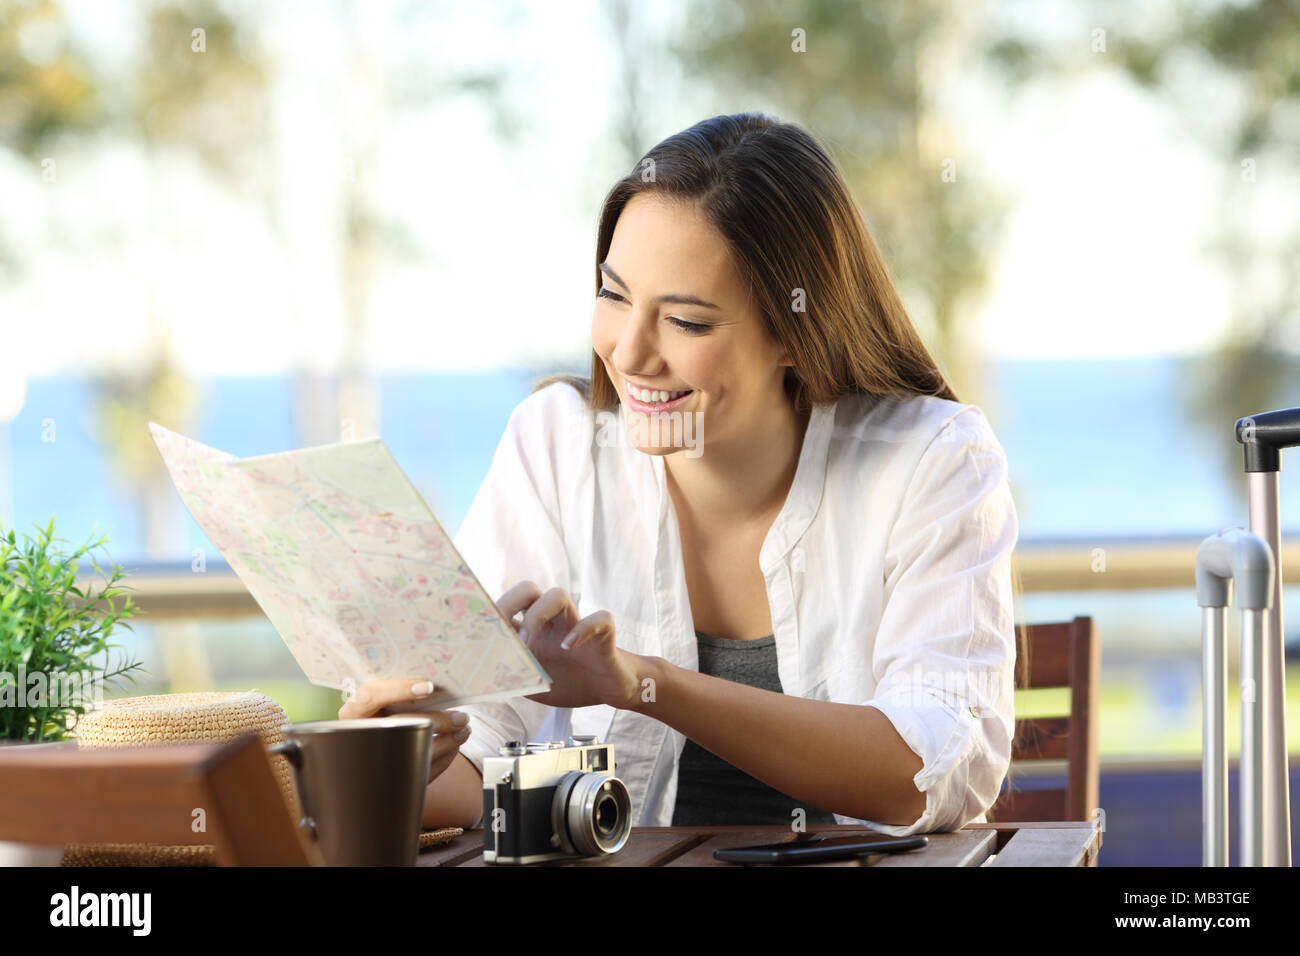 Happy tourist planning vacations consulting a guide in an apartment balcony - Stock Image